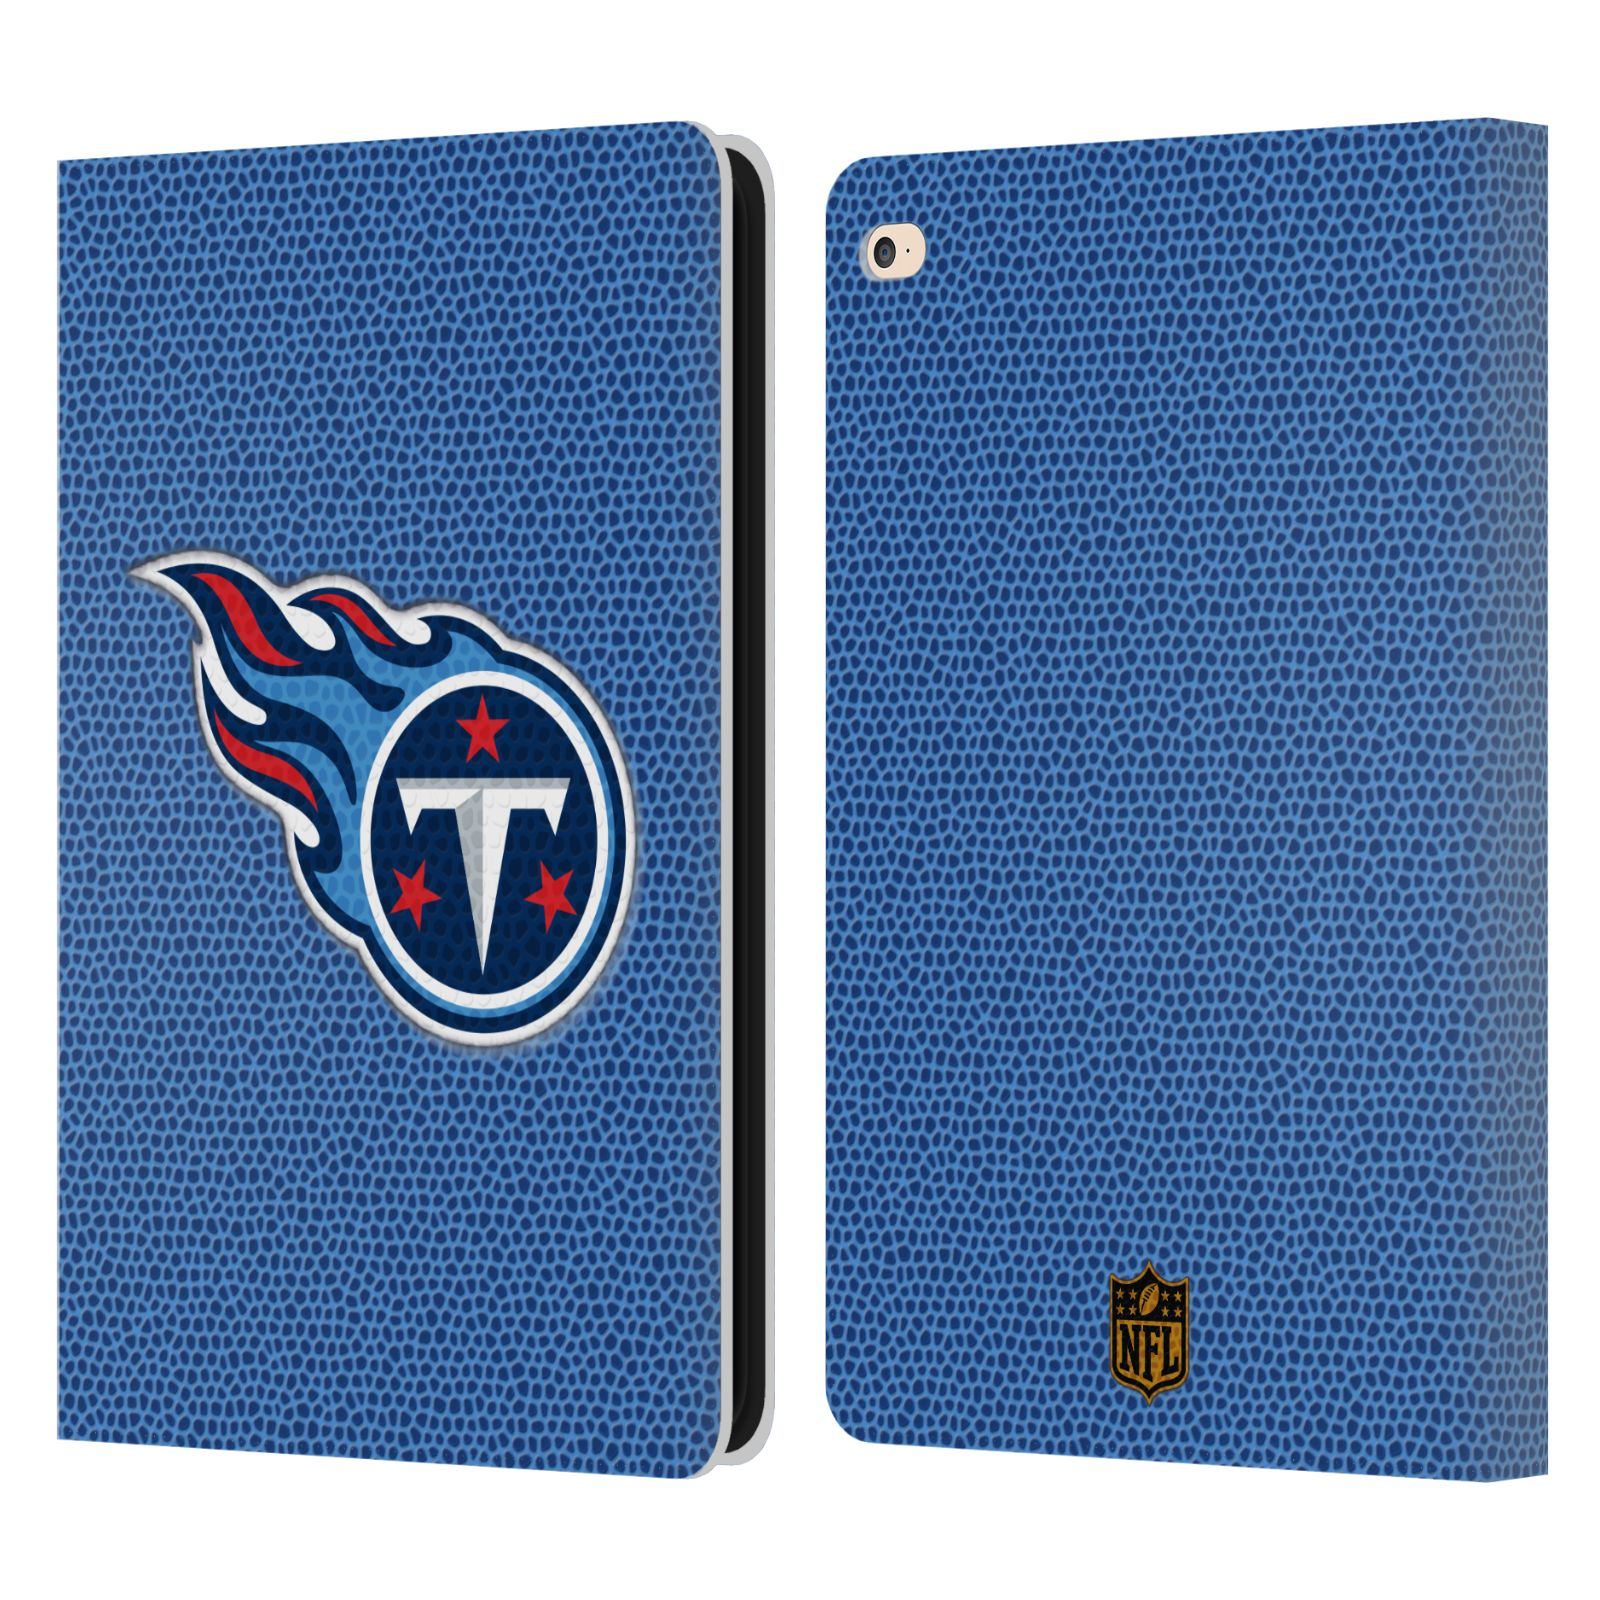 Best Ipad Book Cover : Official nfl tennessee titans logo leather book wallet